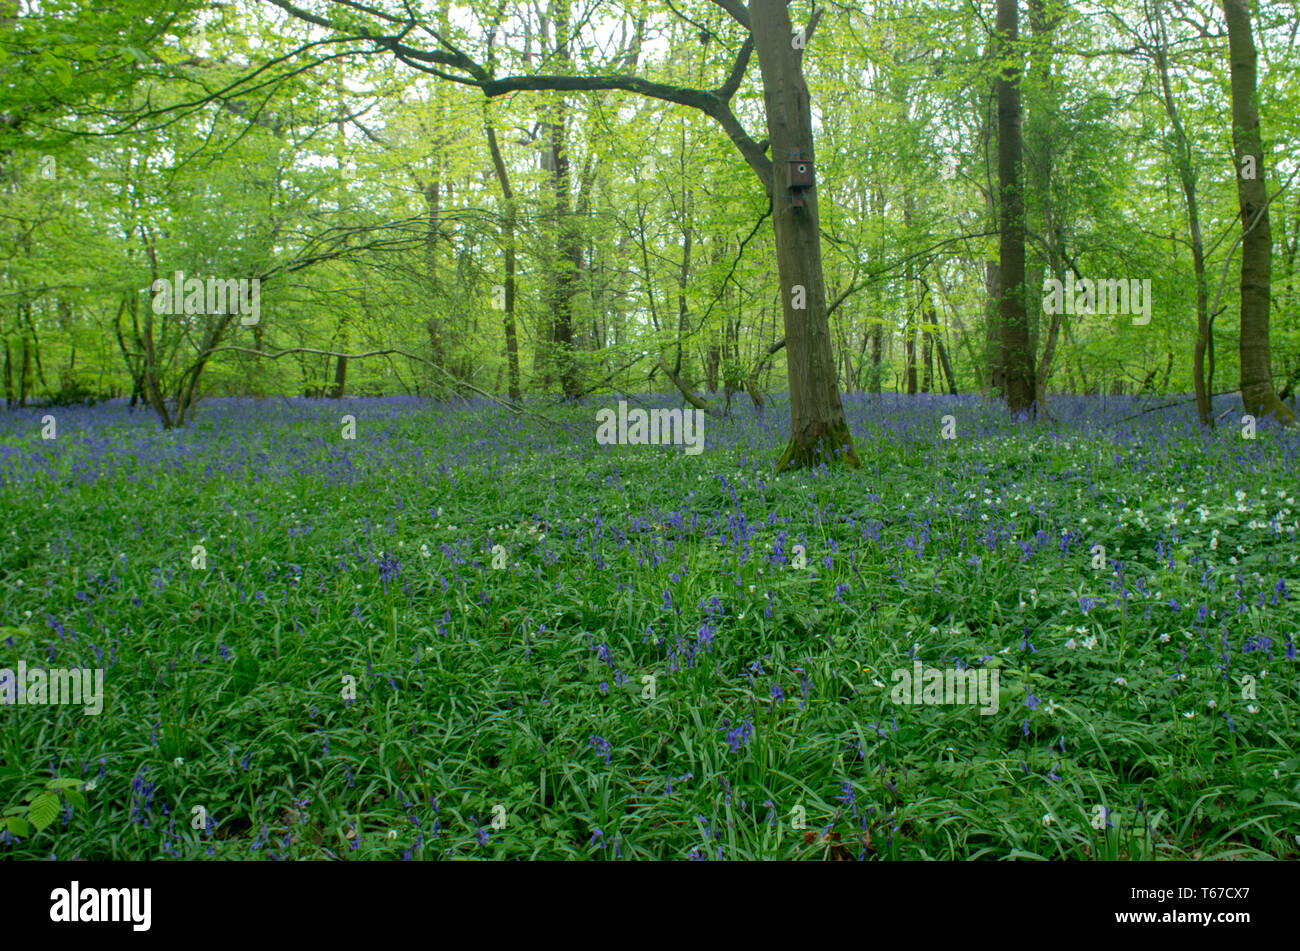 Blue bells float like a cloud between trees in Kentish woodland - Stock Image